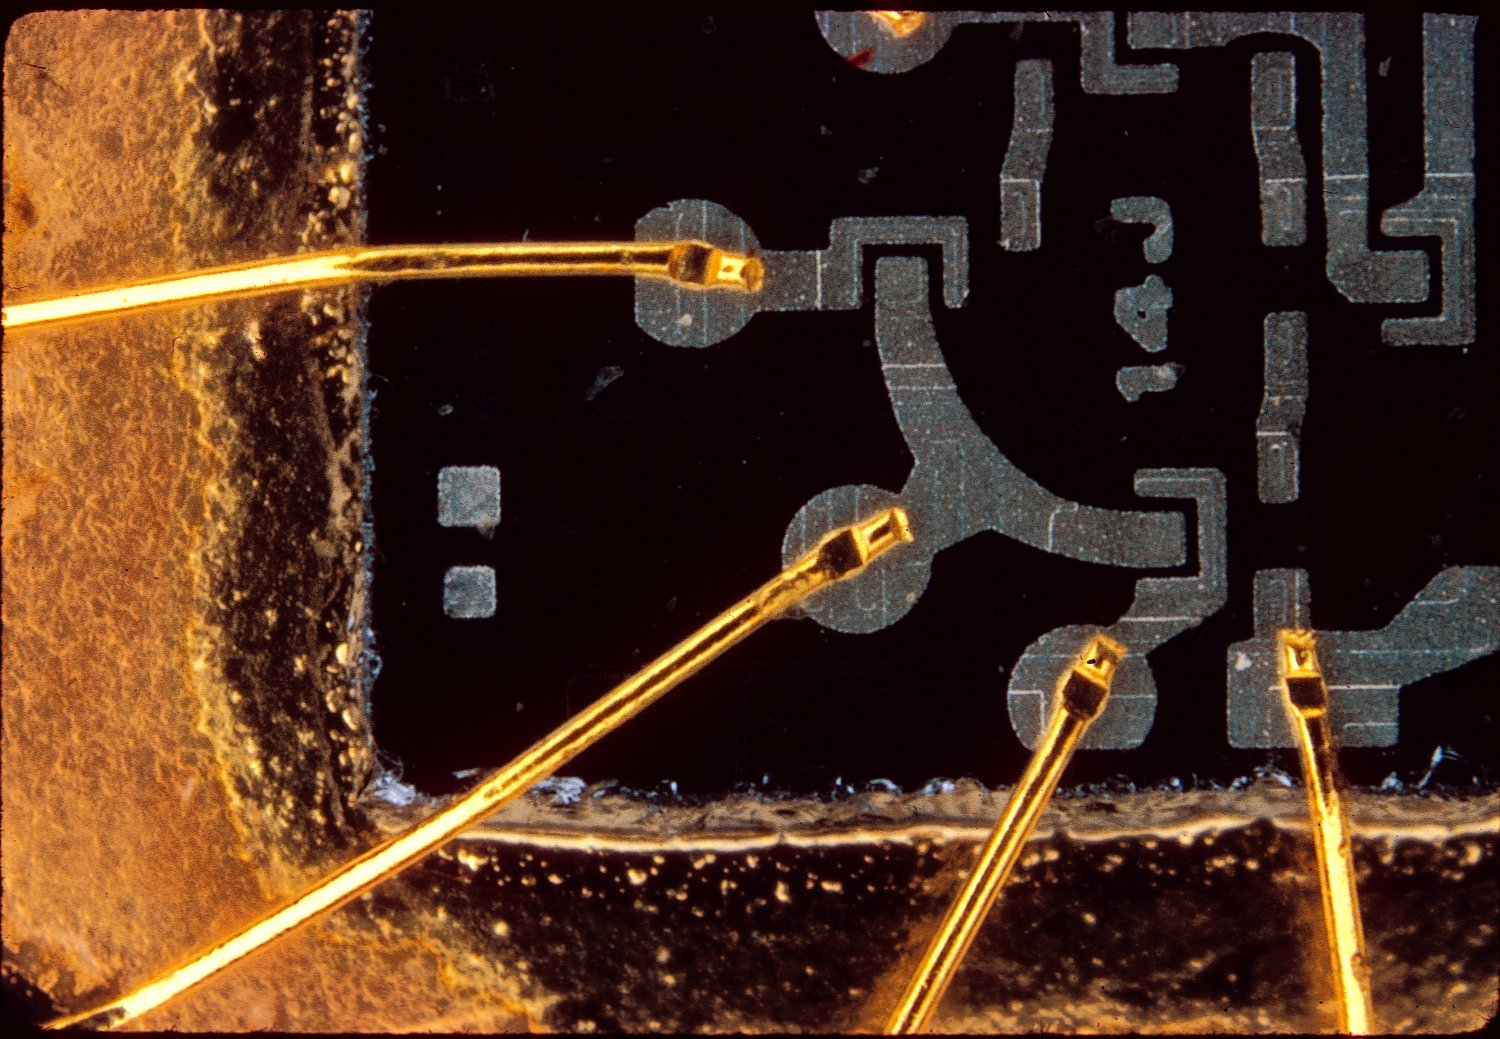 early integrated circuit - Macro photo of an integrated circuit - 1966 - Kodachrome - Tony Karp, design, art, photography, techno-impressionist, techno-impressionism, aerial photography , drone , drones , dji , mavic pro , video , 3D printing - Books -